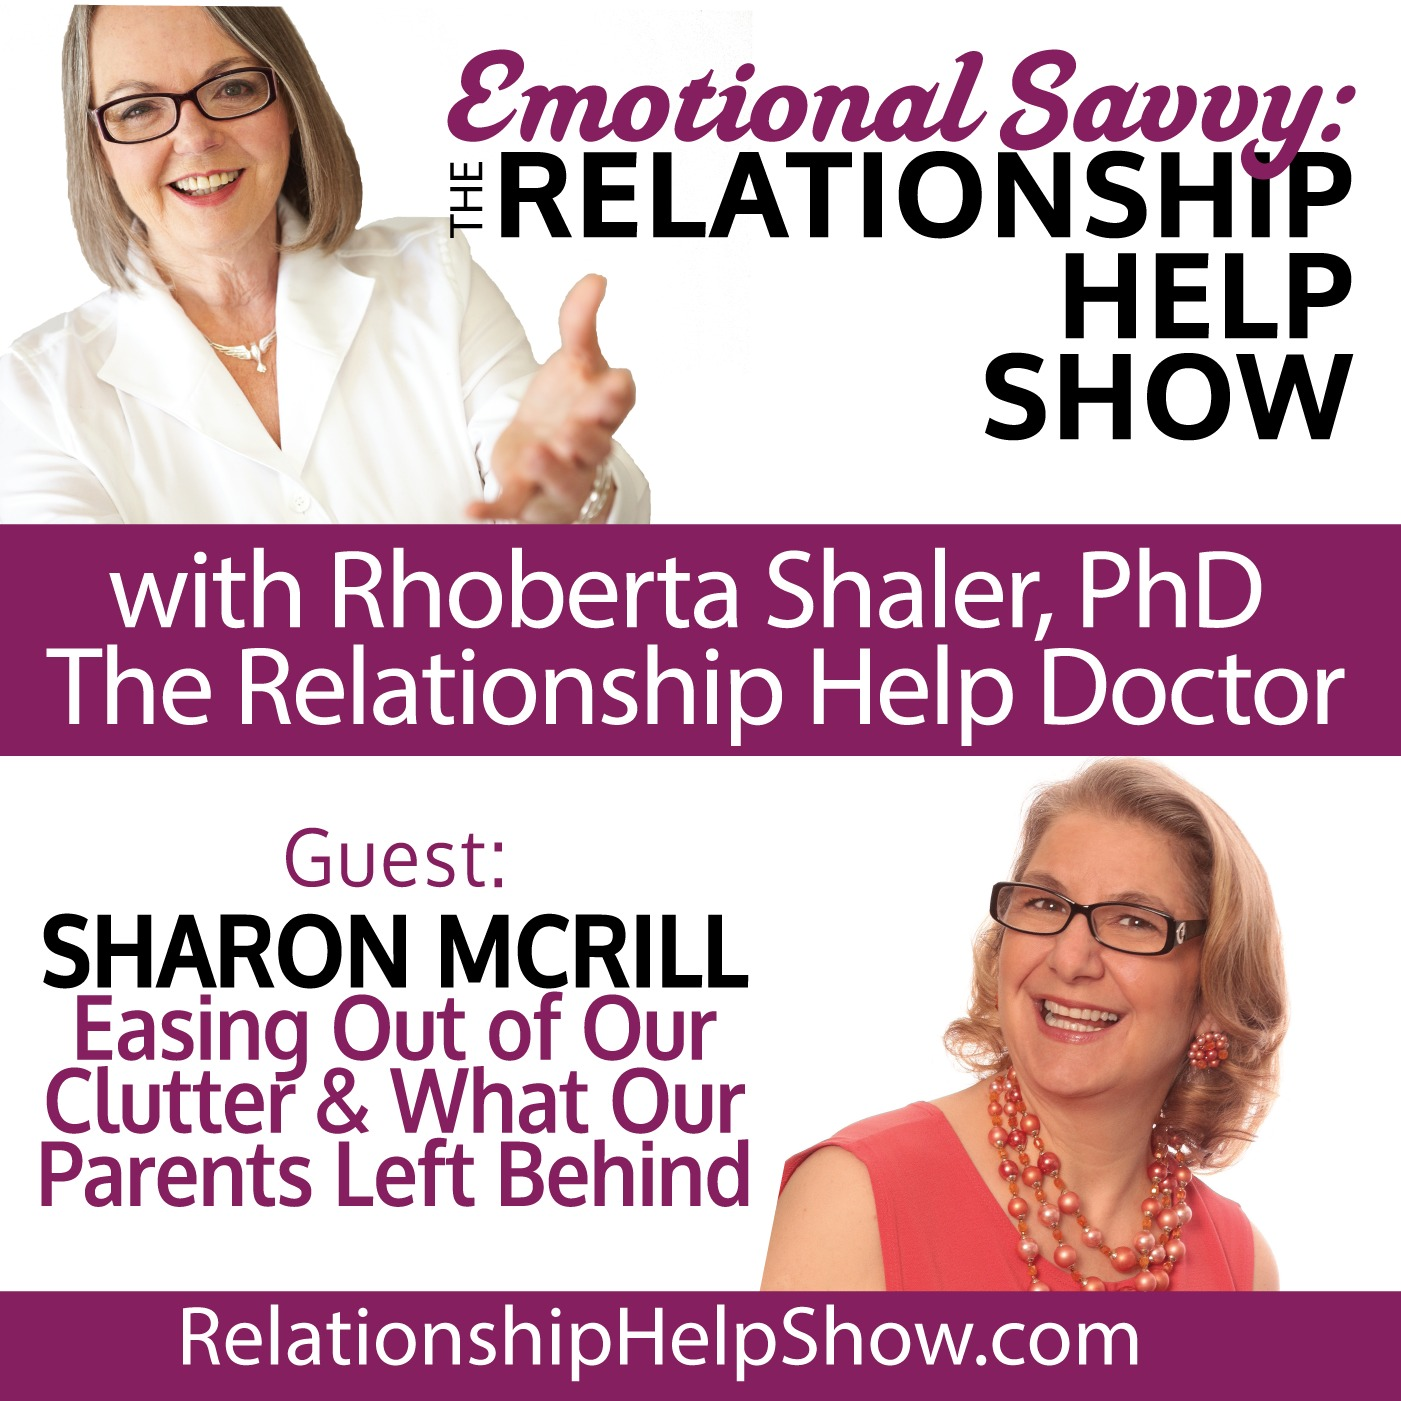 Easing Out of Our Clutter & What Our Parents Left Behind  GUEST: Sharon McRill